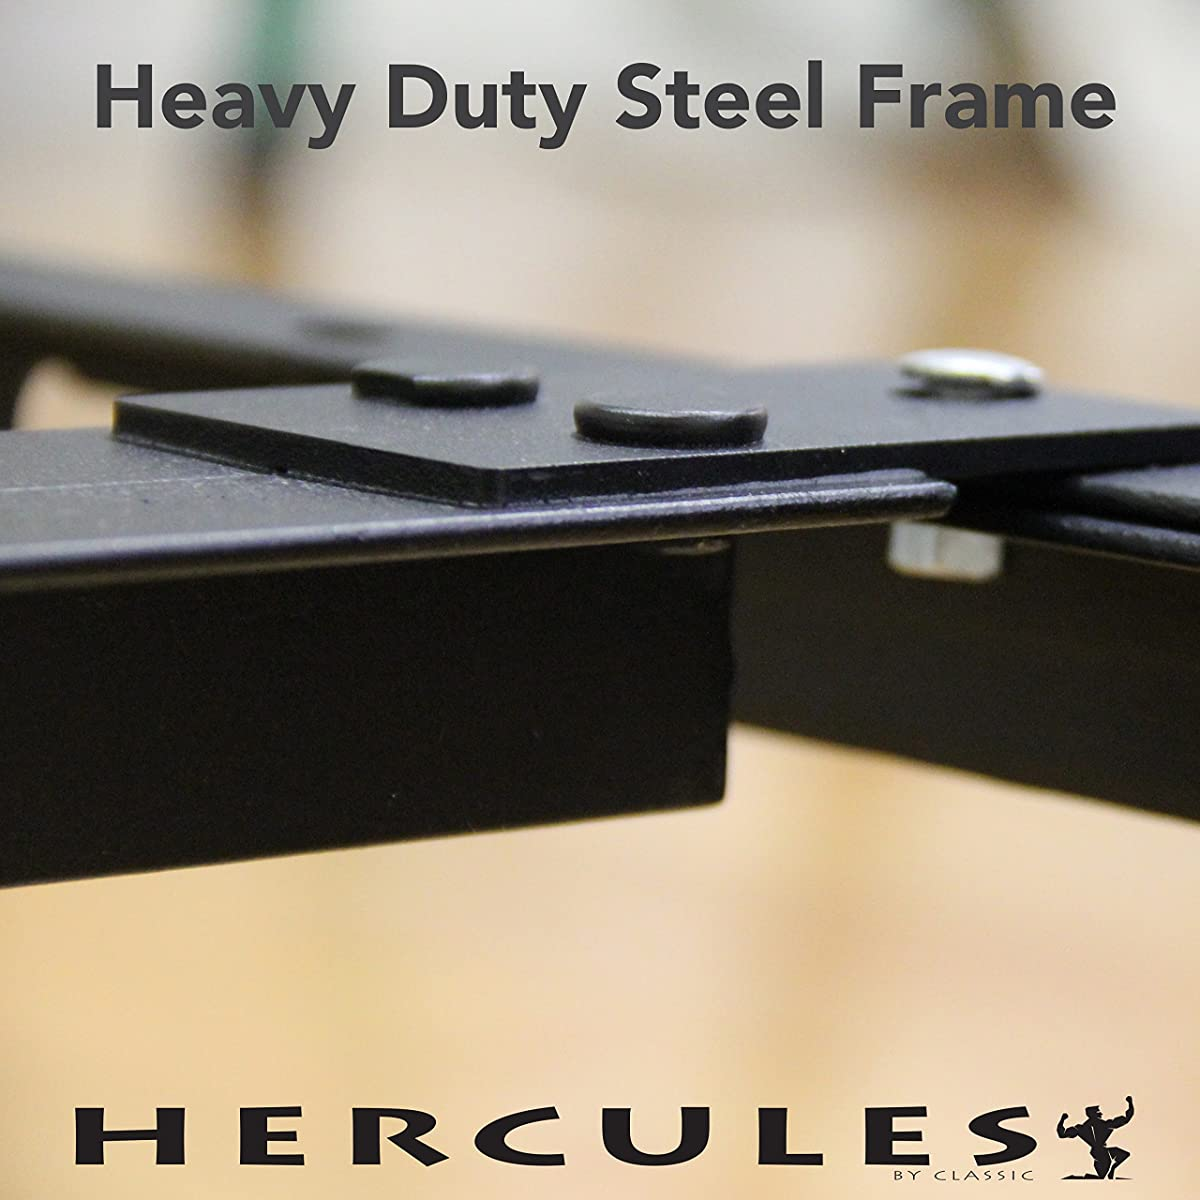 Hercules Universal Heavy Duty Adjustable Metal Bed Frame